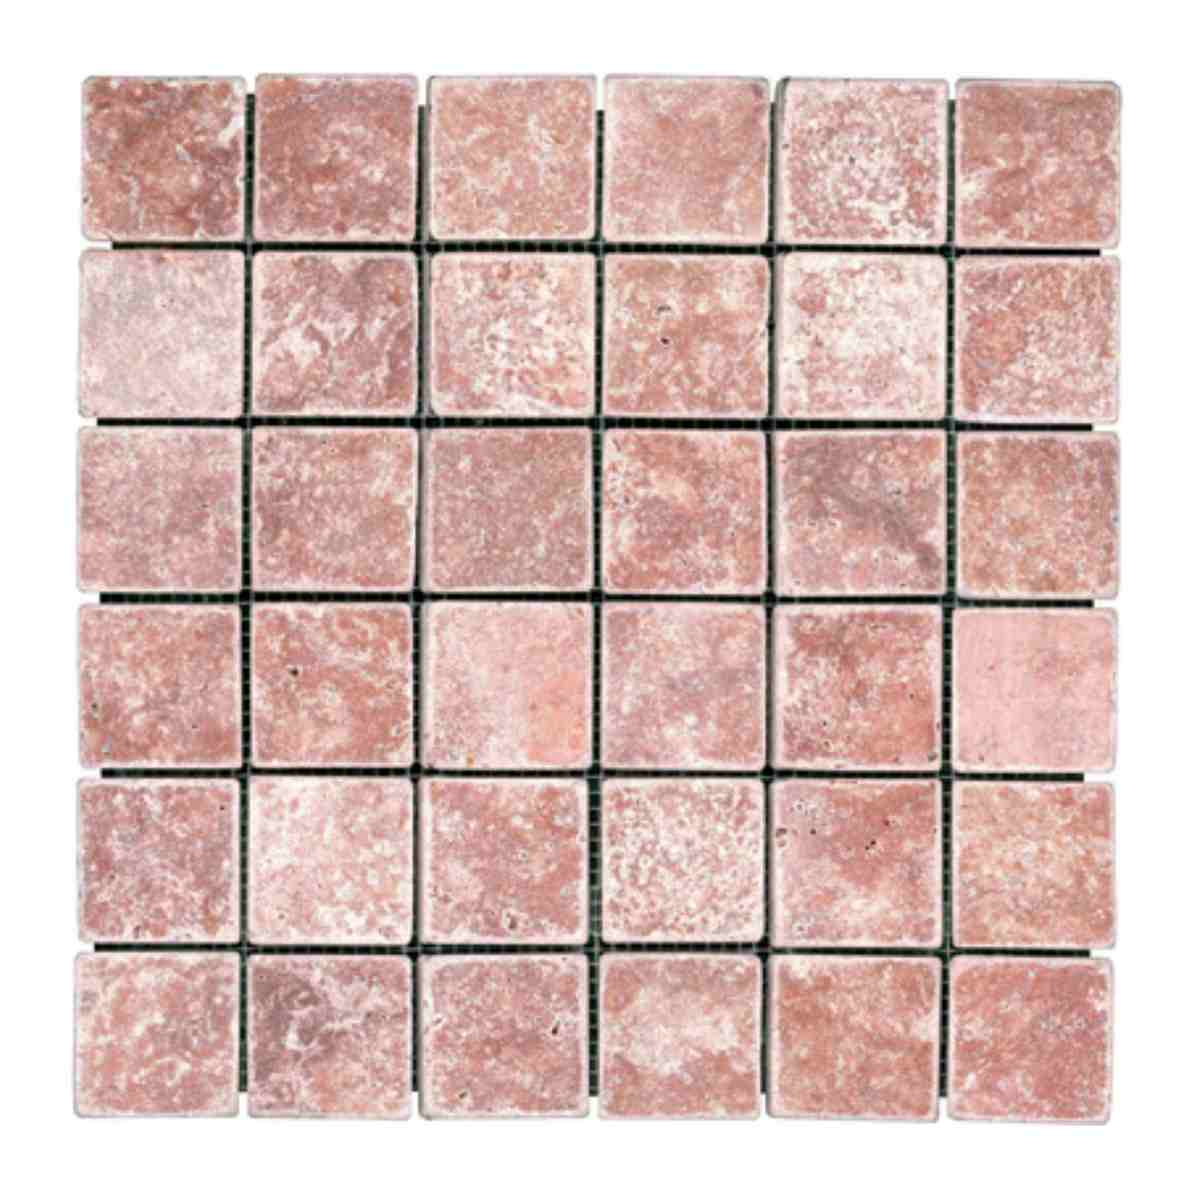 Natural stone netted rosso mosaic